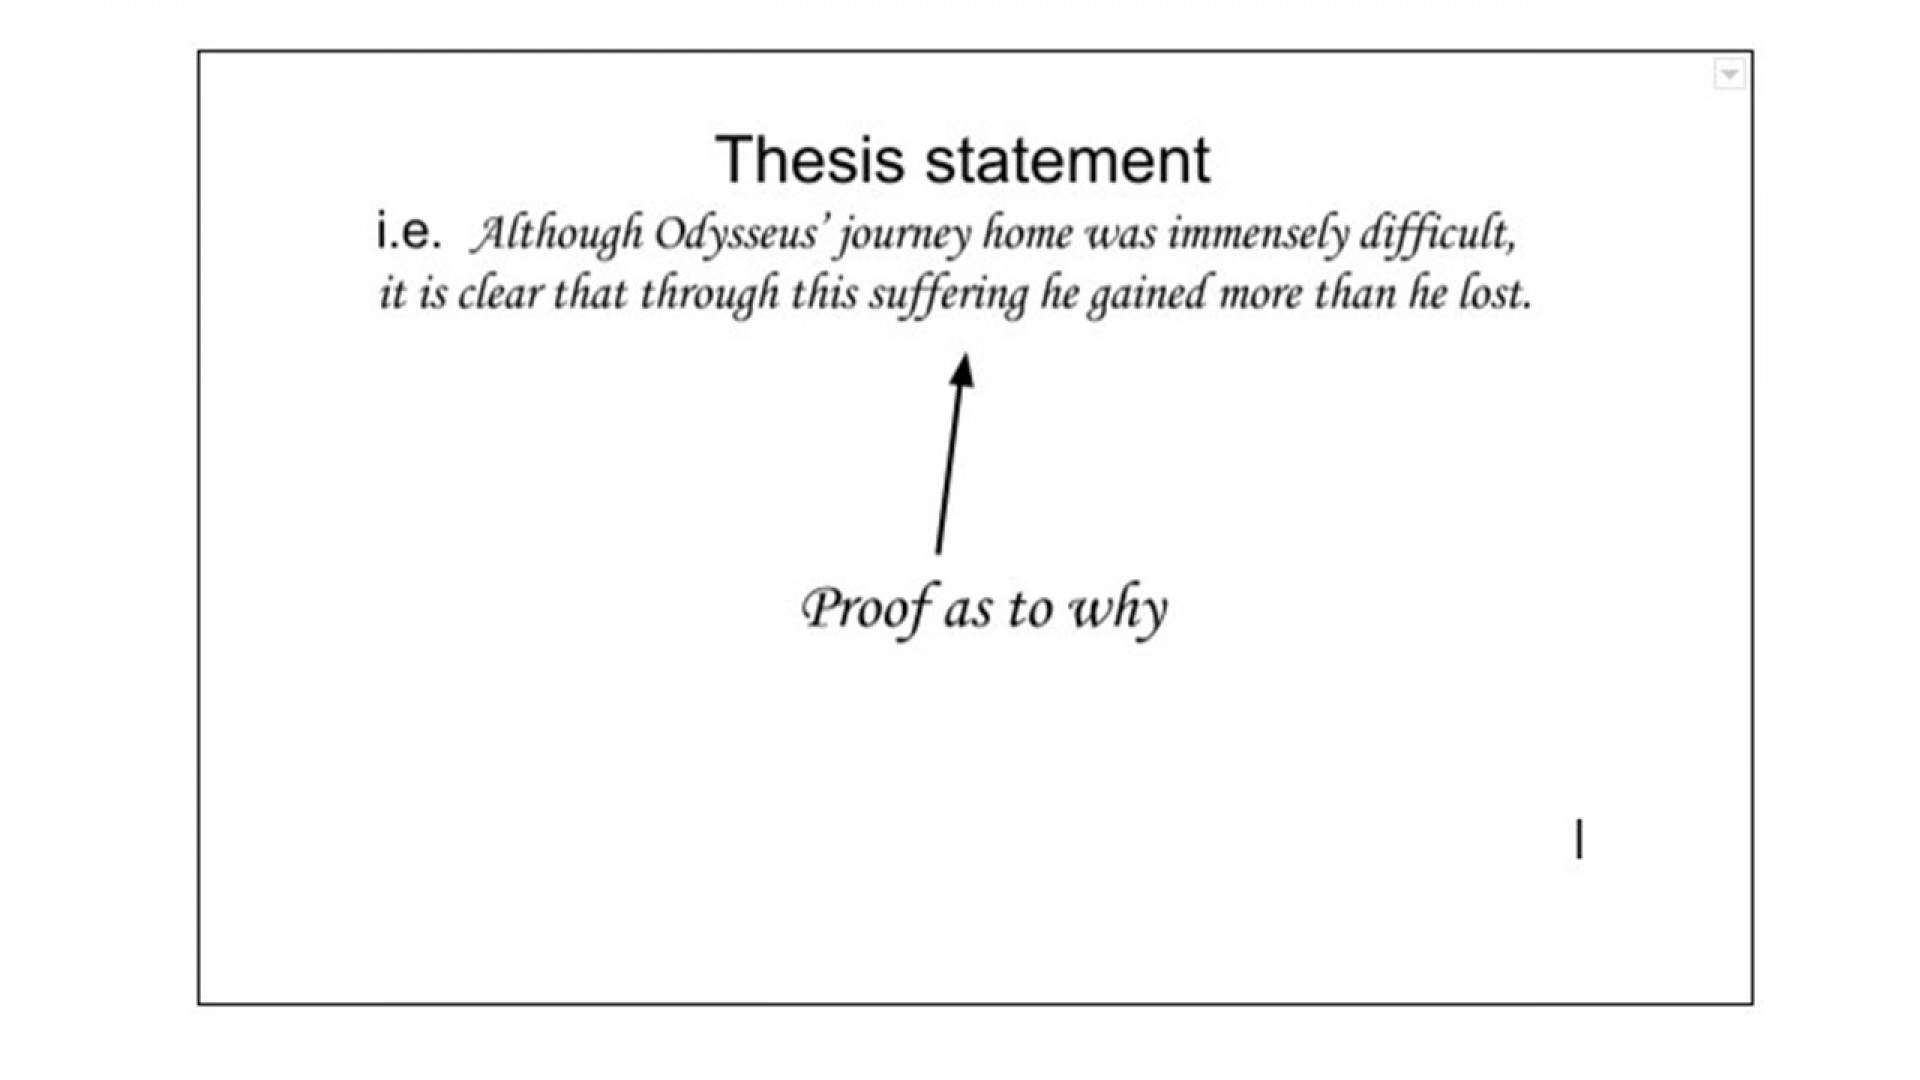 020 An Effective Thesis In Argumentative Essay Must Example Frightening I Present Both Sides Of The Issue Brainly 1920